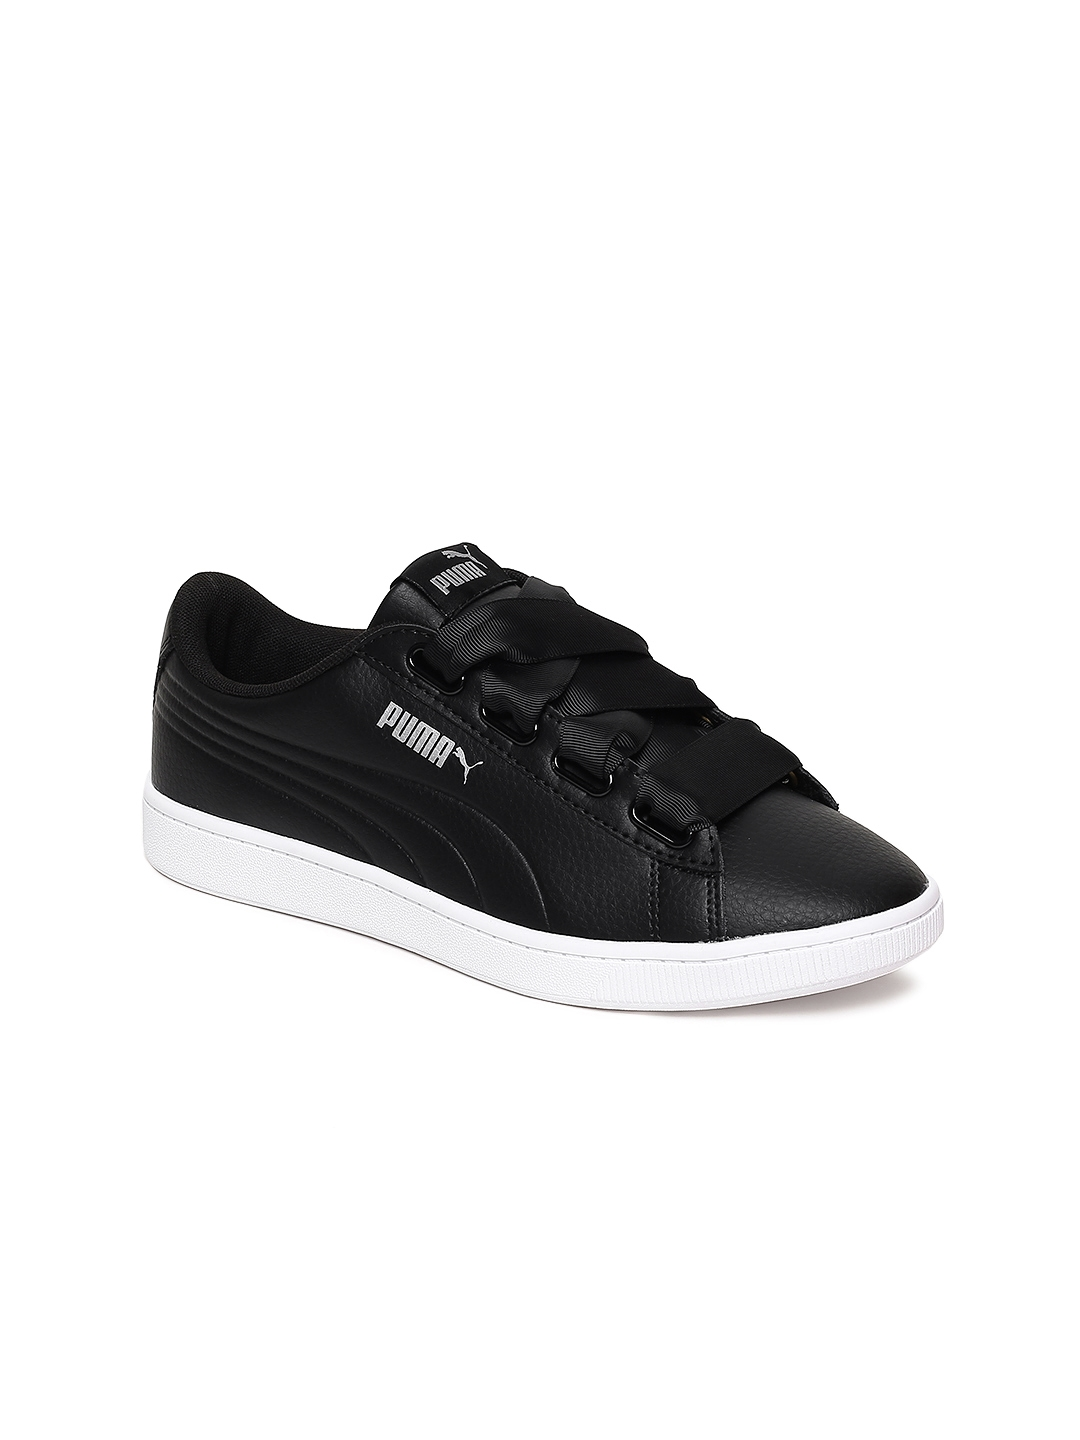 Buy Puma Women Black Vikky V2 Ribbon Core Sneakers - Casual Shoes ... eea8e159b6